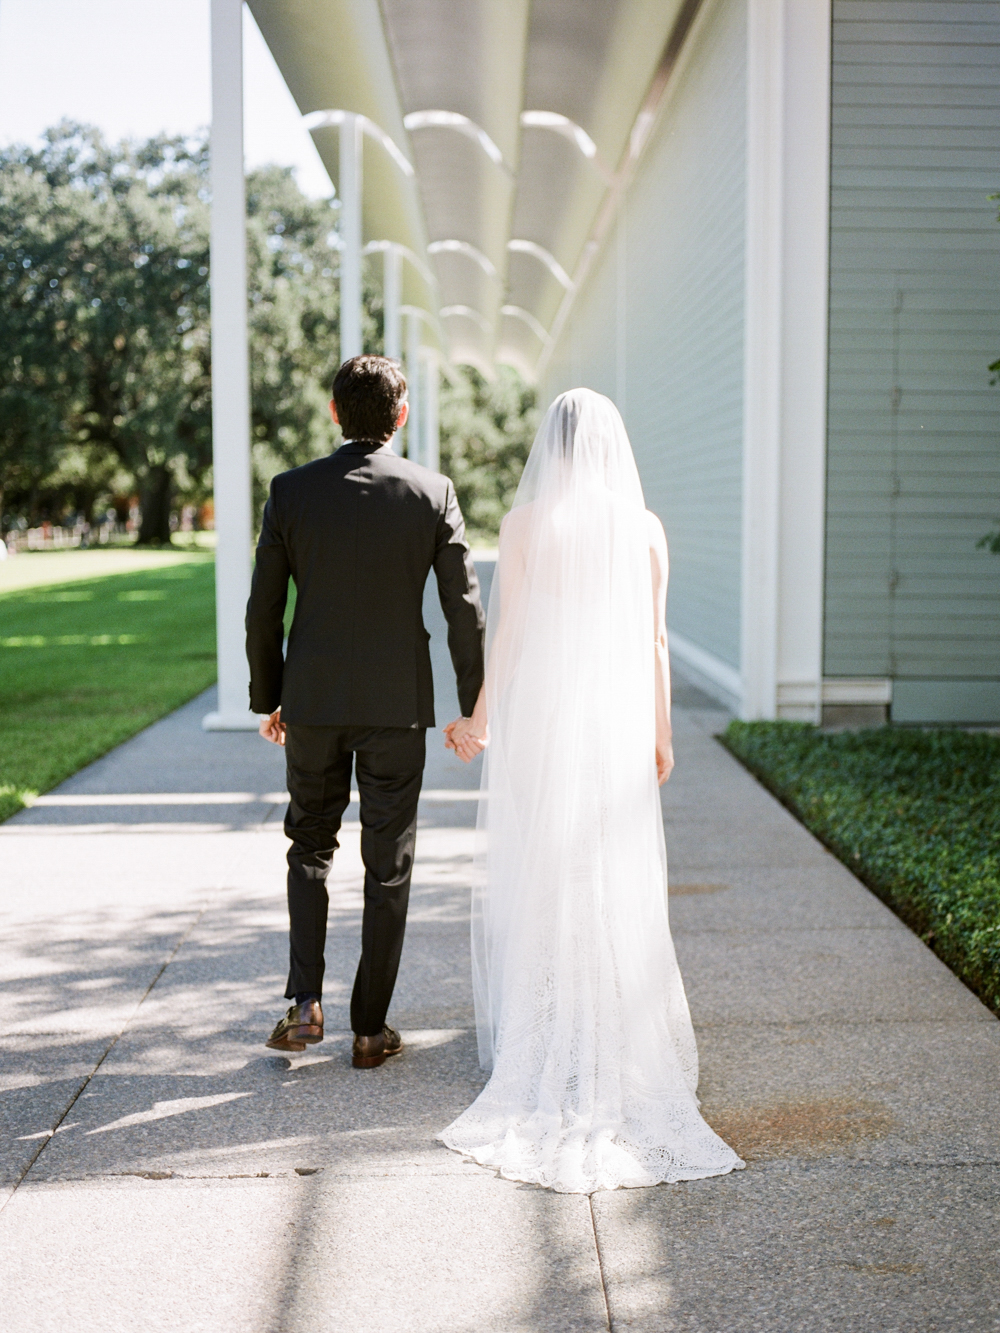 Christine Gosch - destination film photographer - houston wedding photographer - fine art film photographer - elopement photographer - destination wedding - understated wedding - simple beautiful wedding photography-66.jpg